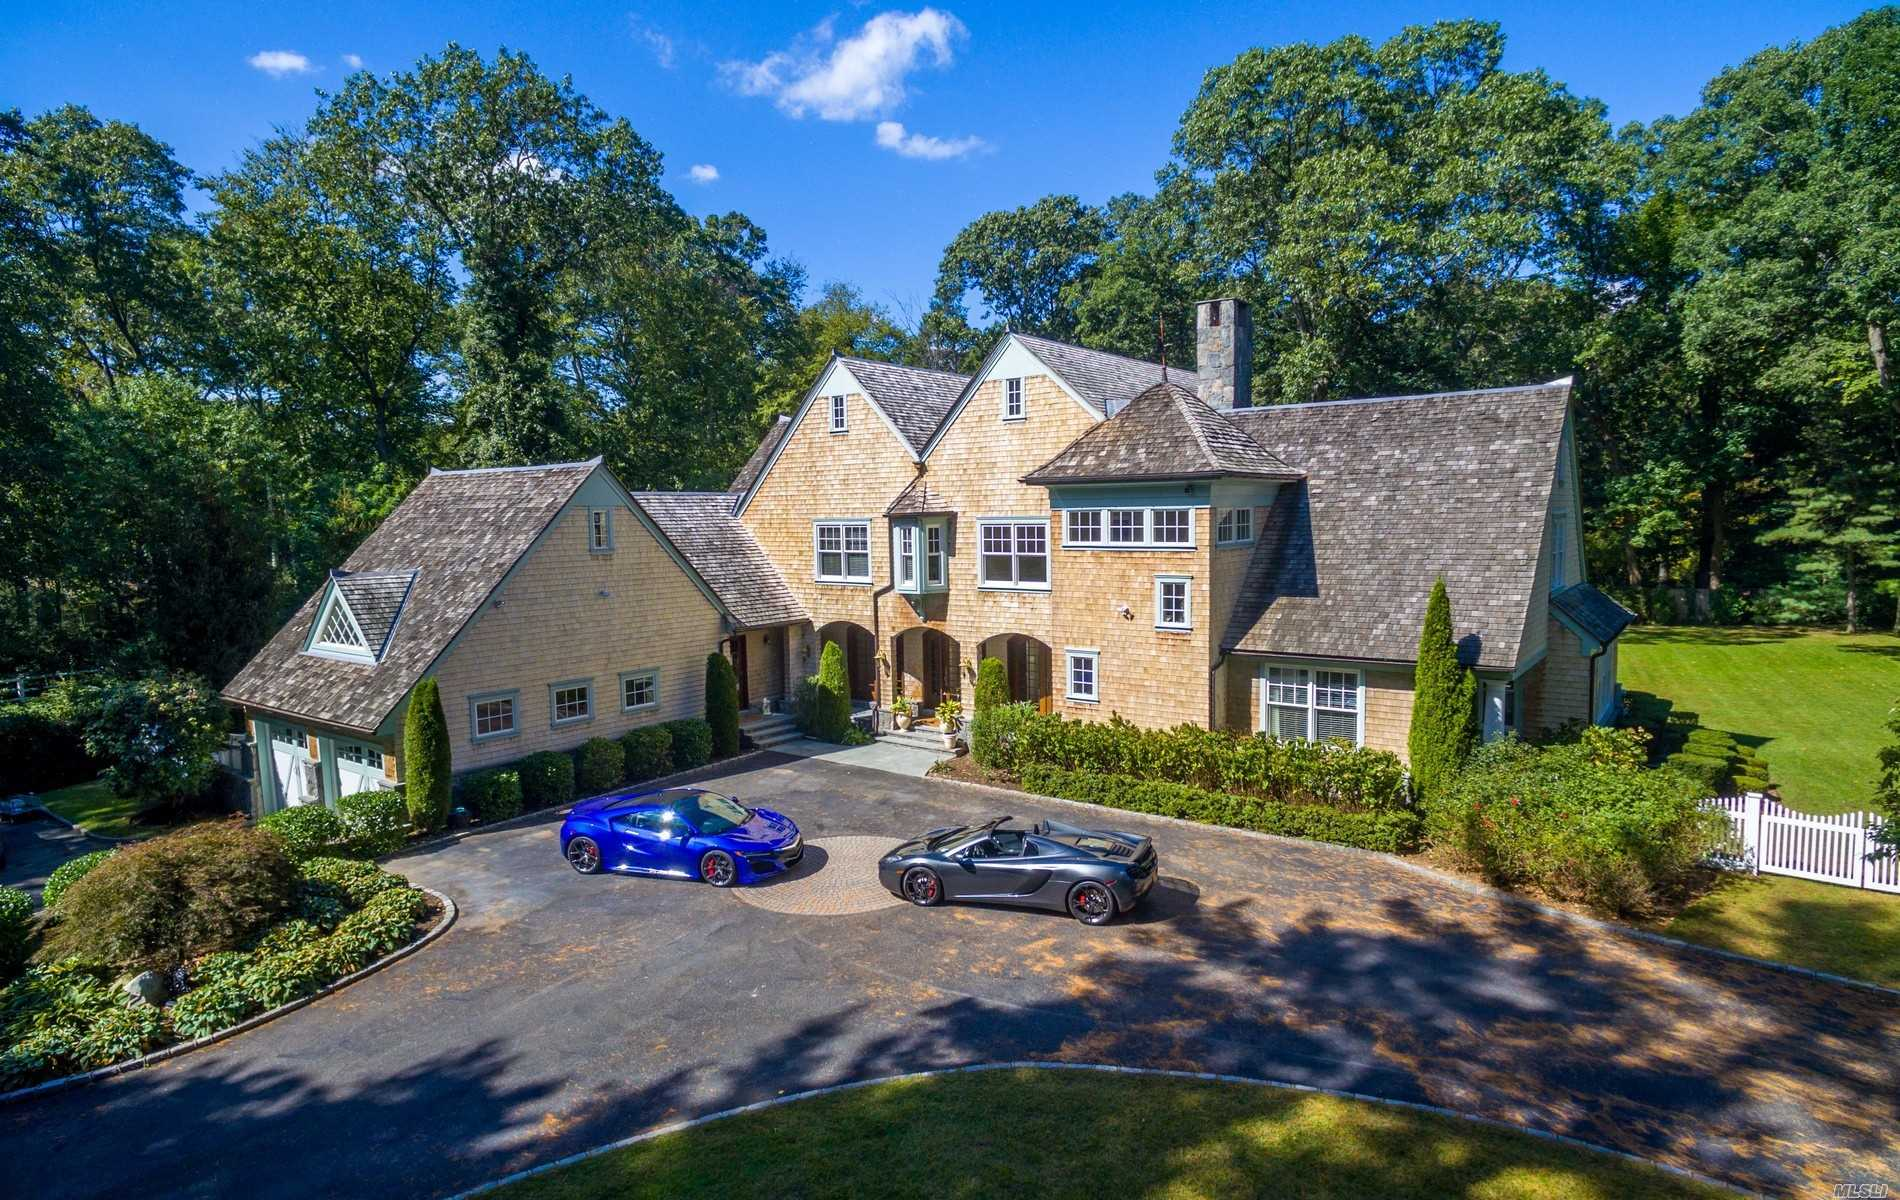 Handsome Gates Open To Colorful Gardens As You Approach This Young Extraordinary European Inspired Residence. A Refreshing, Unique Design, This 6400 Sqft Home Offers A Luxurious Lifestyle Complete With Smart House Technology, State Of The Art Amenities, Unparalleled Quality, Details With An Open Floor Plan Thats Ideal For Entertaining.1st & 2nd Flr Mastersuite, 1st & 2nd Flr Den, 6/7 Bedrms W Private Baths, Chef's Kitchen, Garage Can House Up To 4 Cars, 11'Ci In Lower Level.2 Quiet Acres, Jericho Sd#15